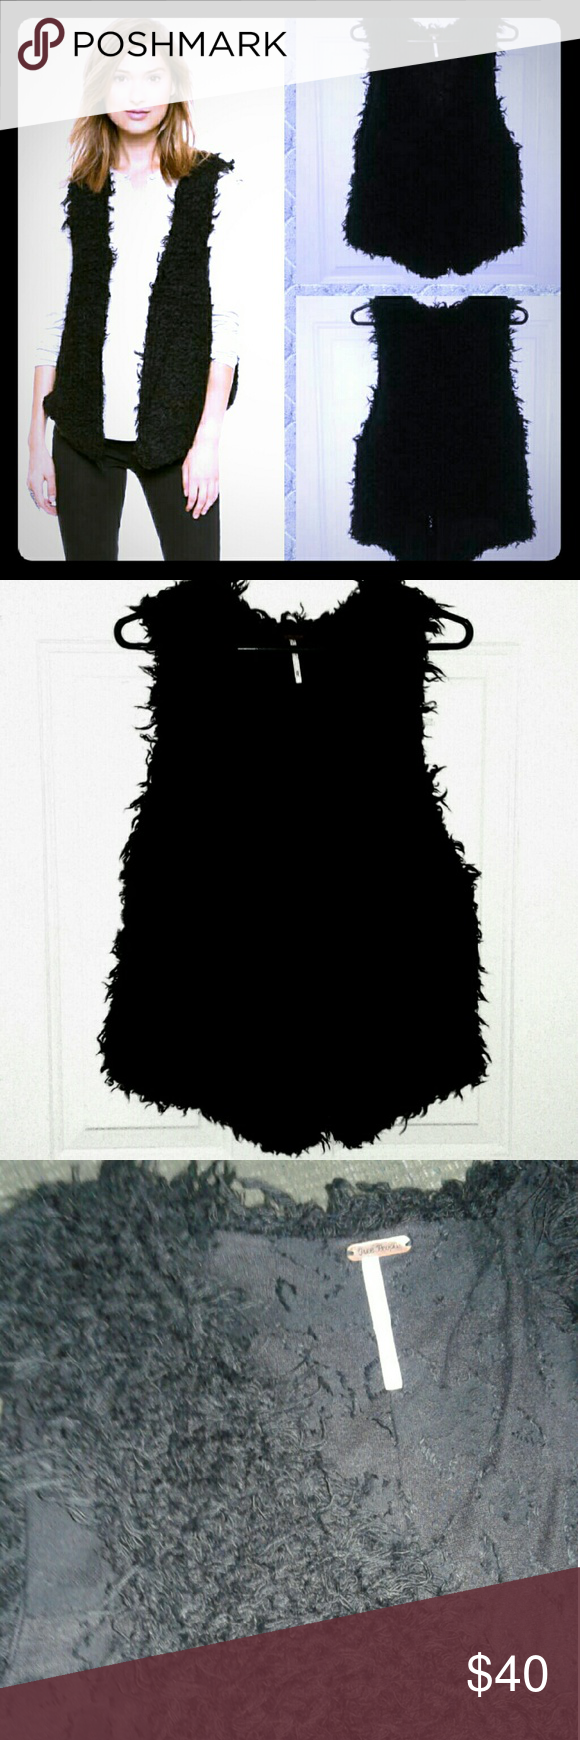 Free People Fur Away Black Vest Like new, knit shaggy texture,  stretchy, hook & eye closure, lined. Free People Jackets & Coats Vests